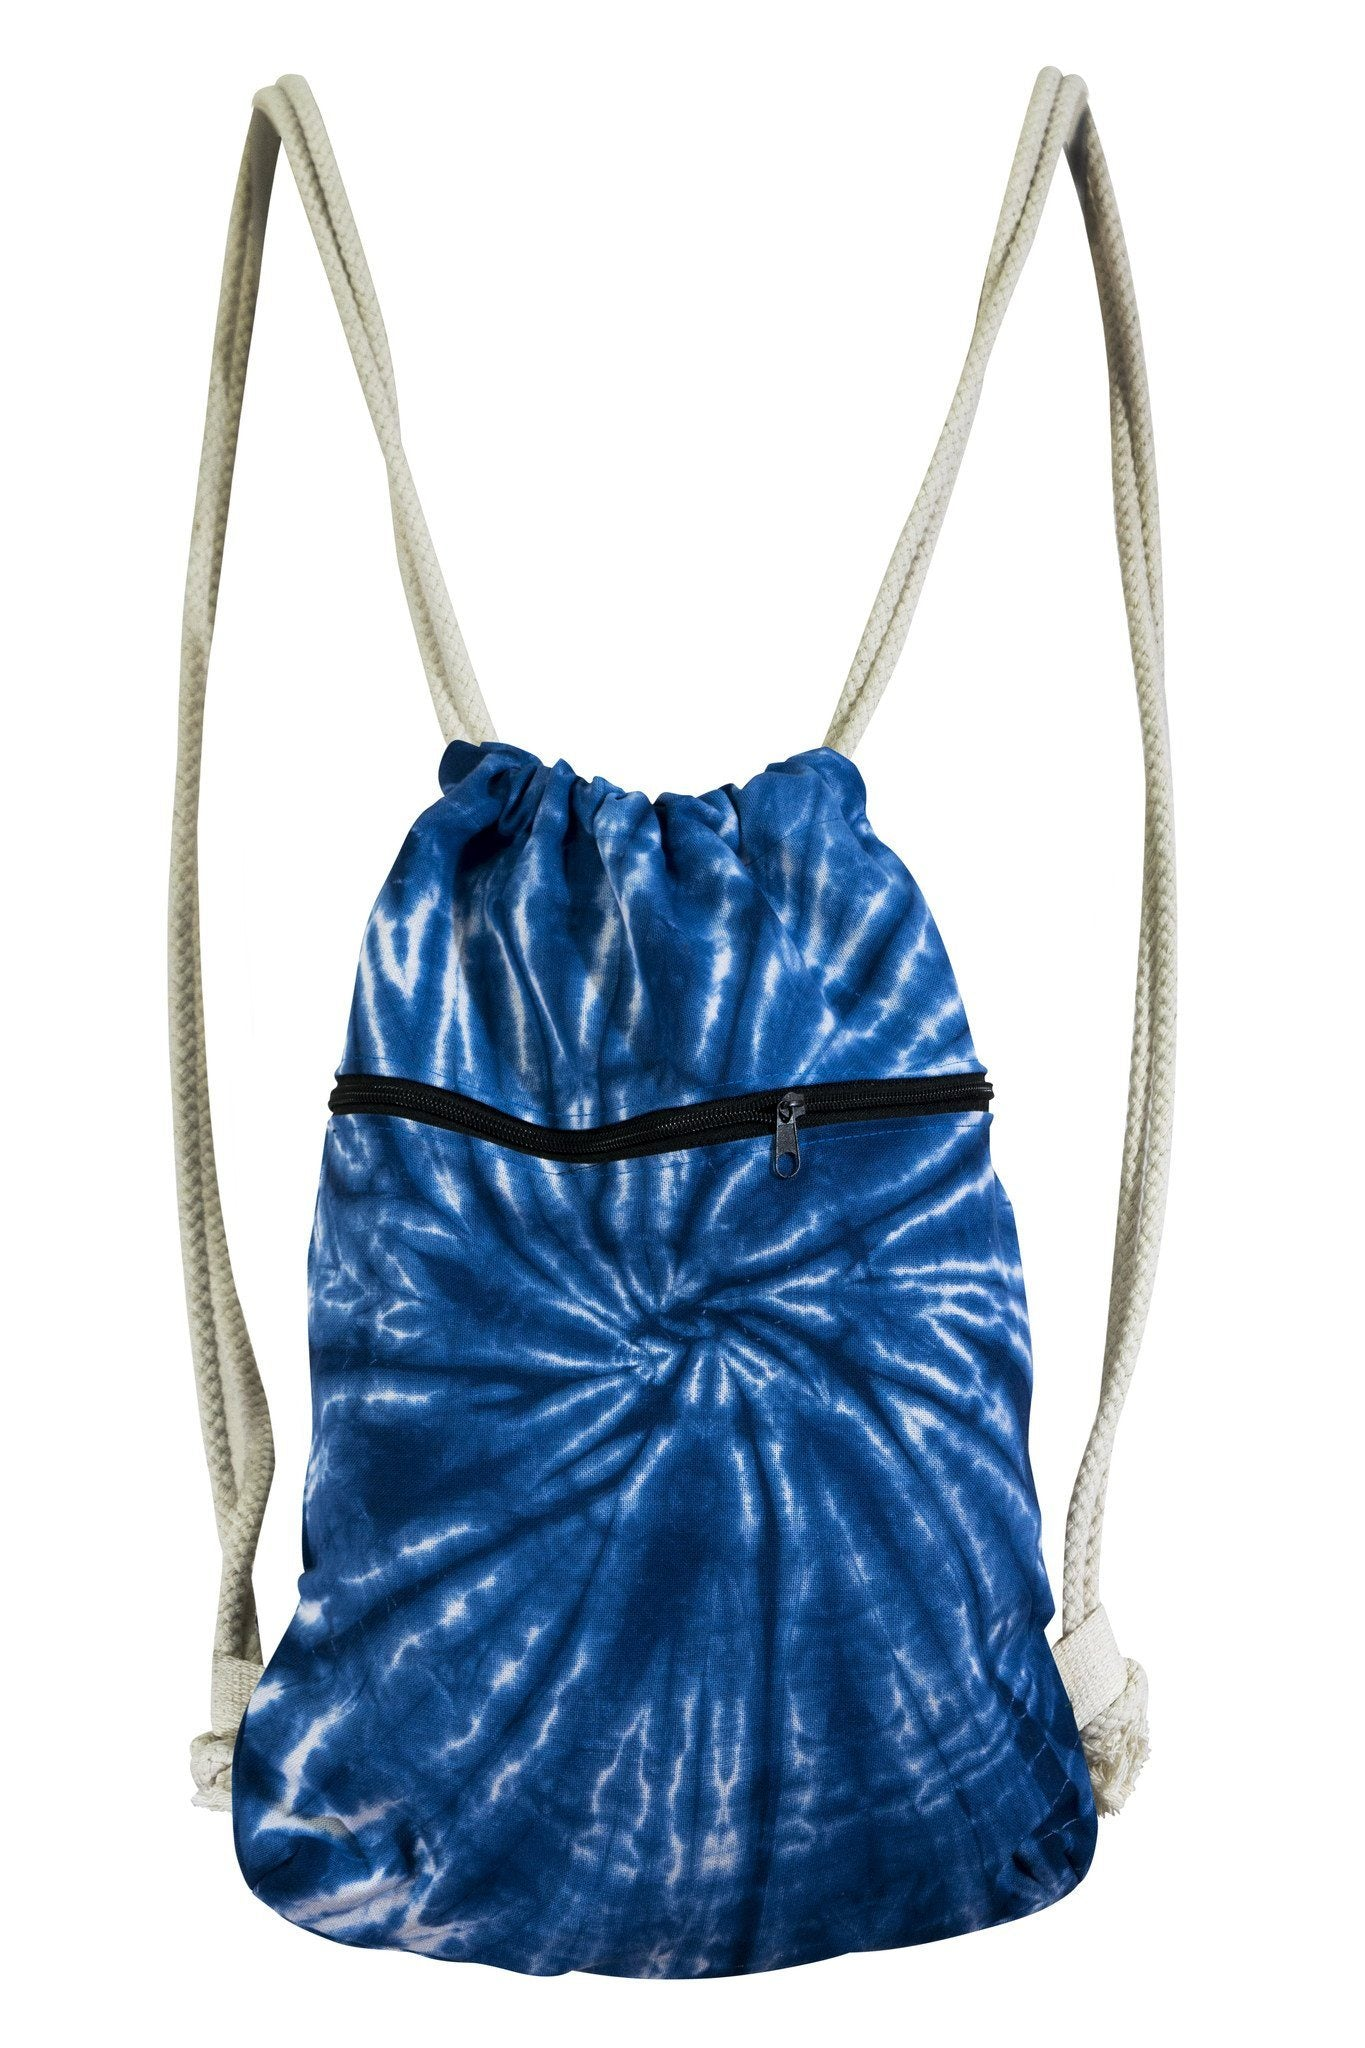 Tie Dye Duffle Bag Drawstring Backpack - CCCollections